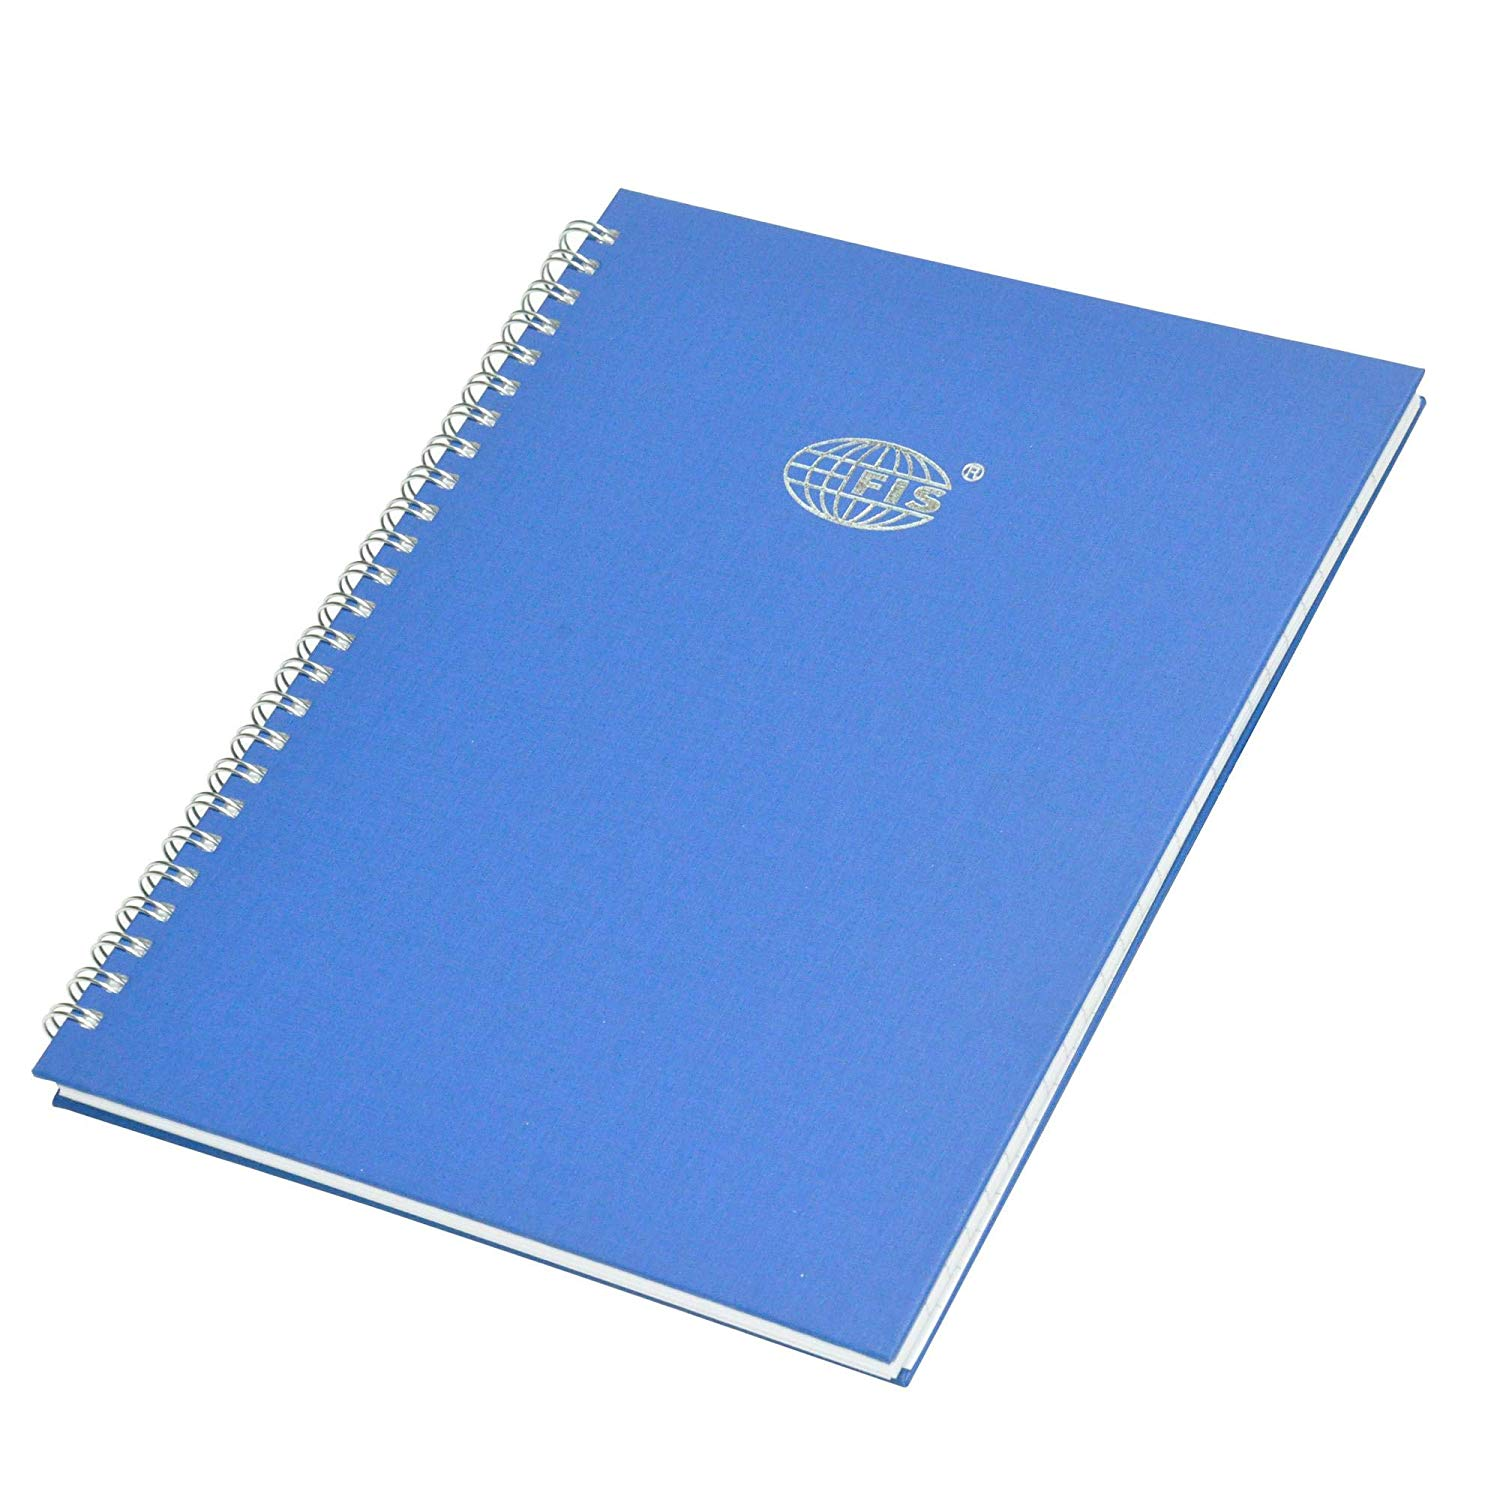 FIS Manuscript Book 8mm Single Ruled with Spiral 96 sheets 2Q 10 x 8in FSMN10X82QSB - Blue (pc)